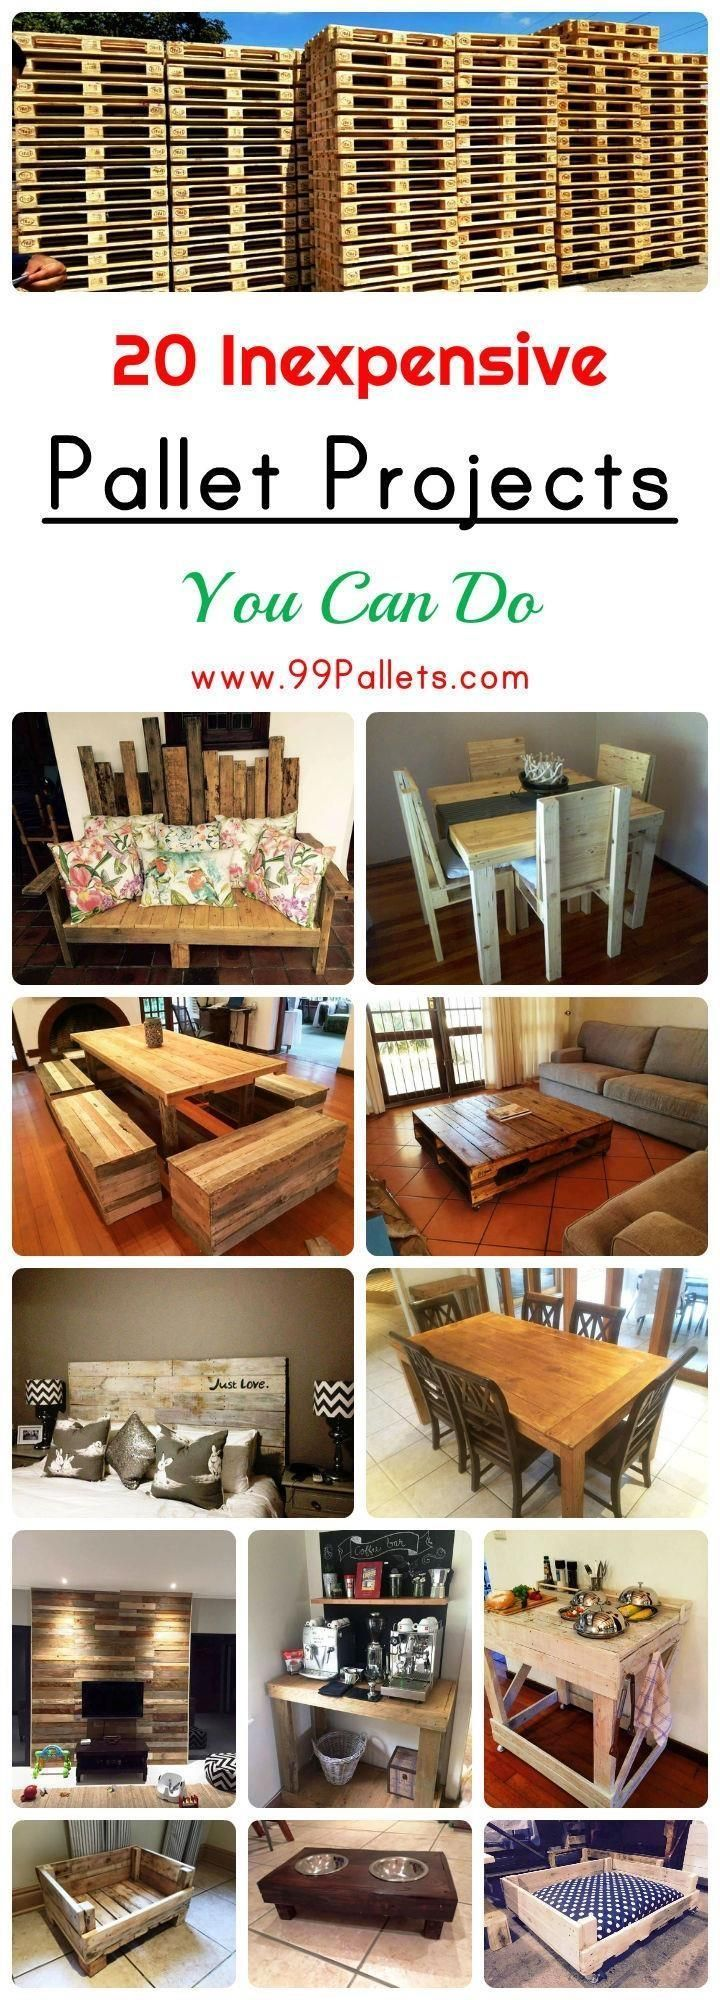 Diy pallet sofa with table 99 pallets - 20 Inexpensive Pallet Projects You Can Do Wood Palletspallet